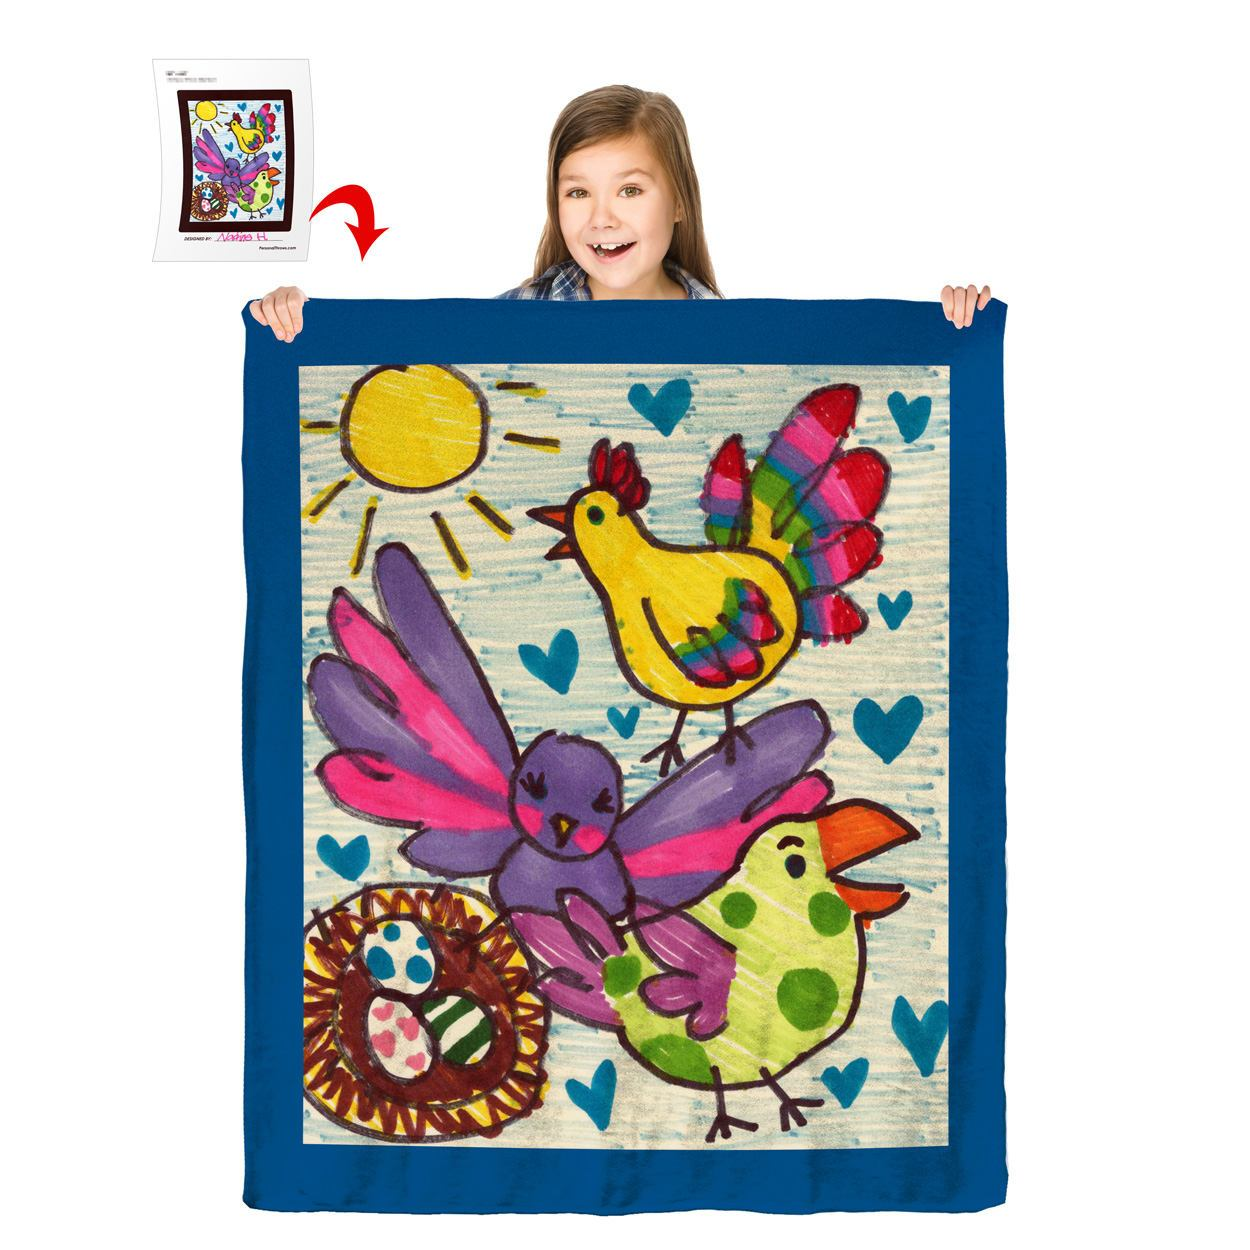 Turn Your Child's Drawing into a 50″ x 60″ Plush Fleece Blanket